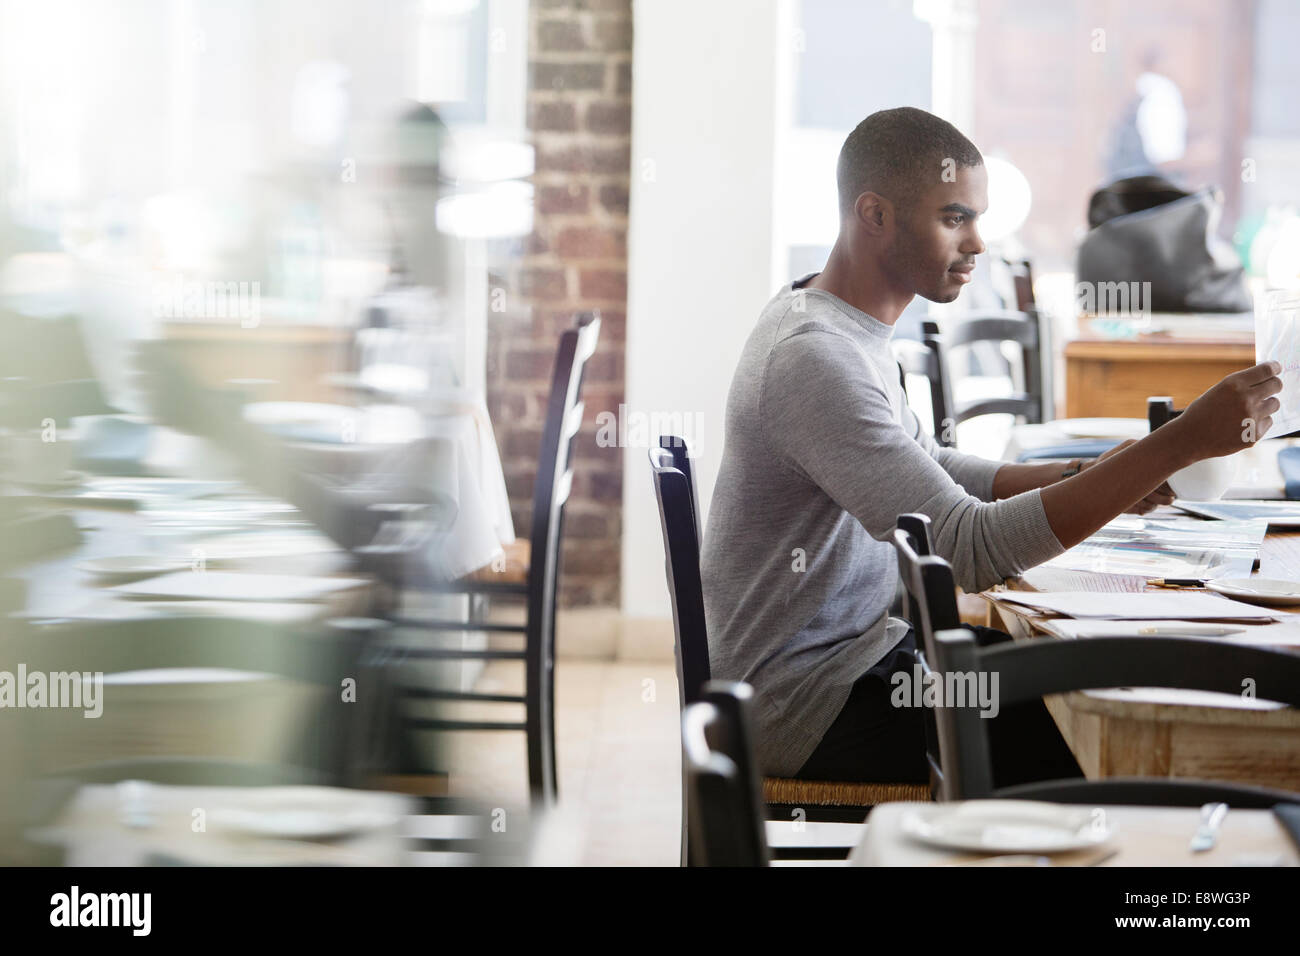 Businessman looking through documents in cafe - Stock Image